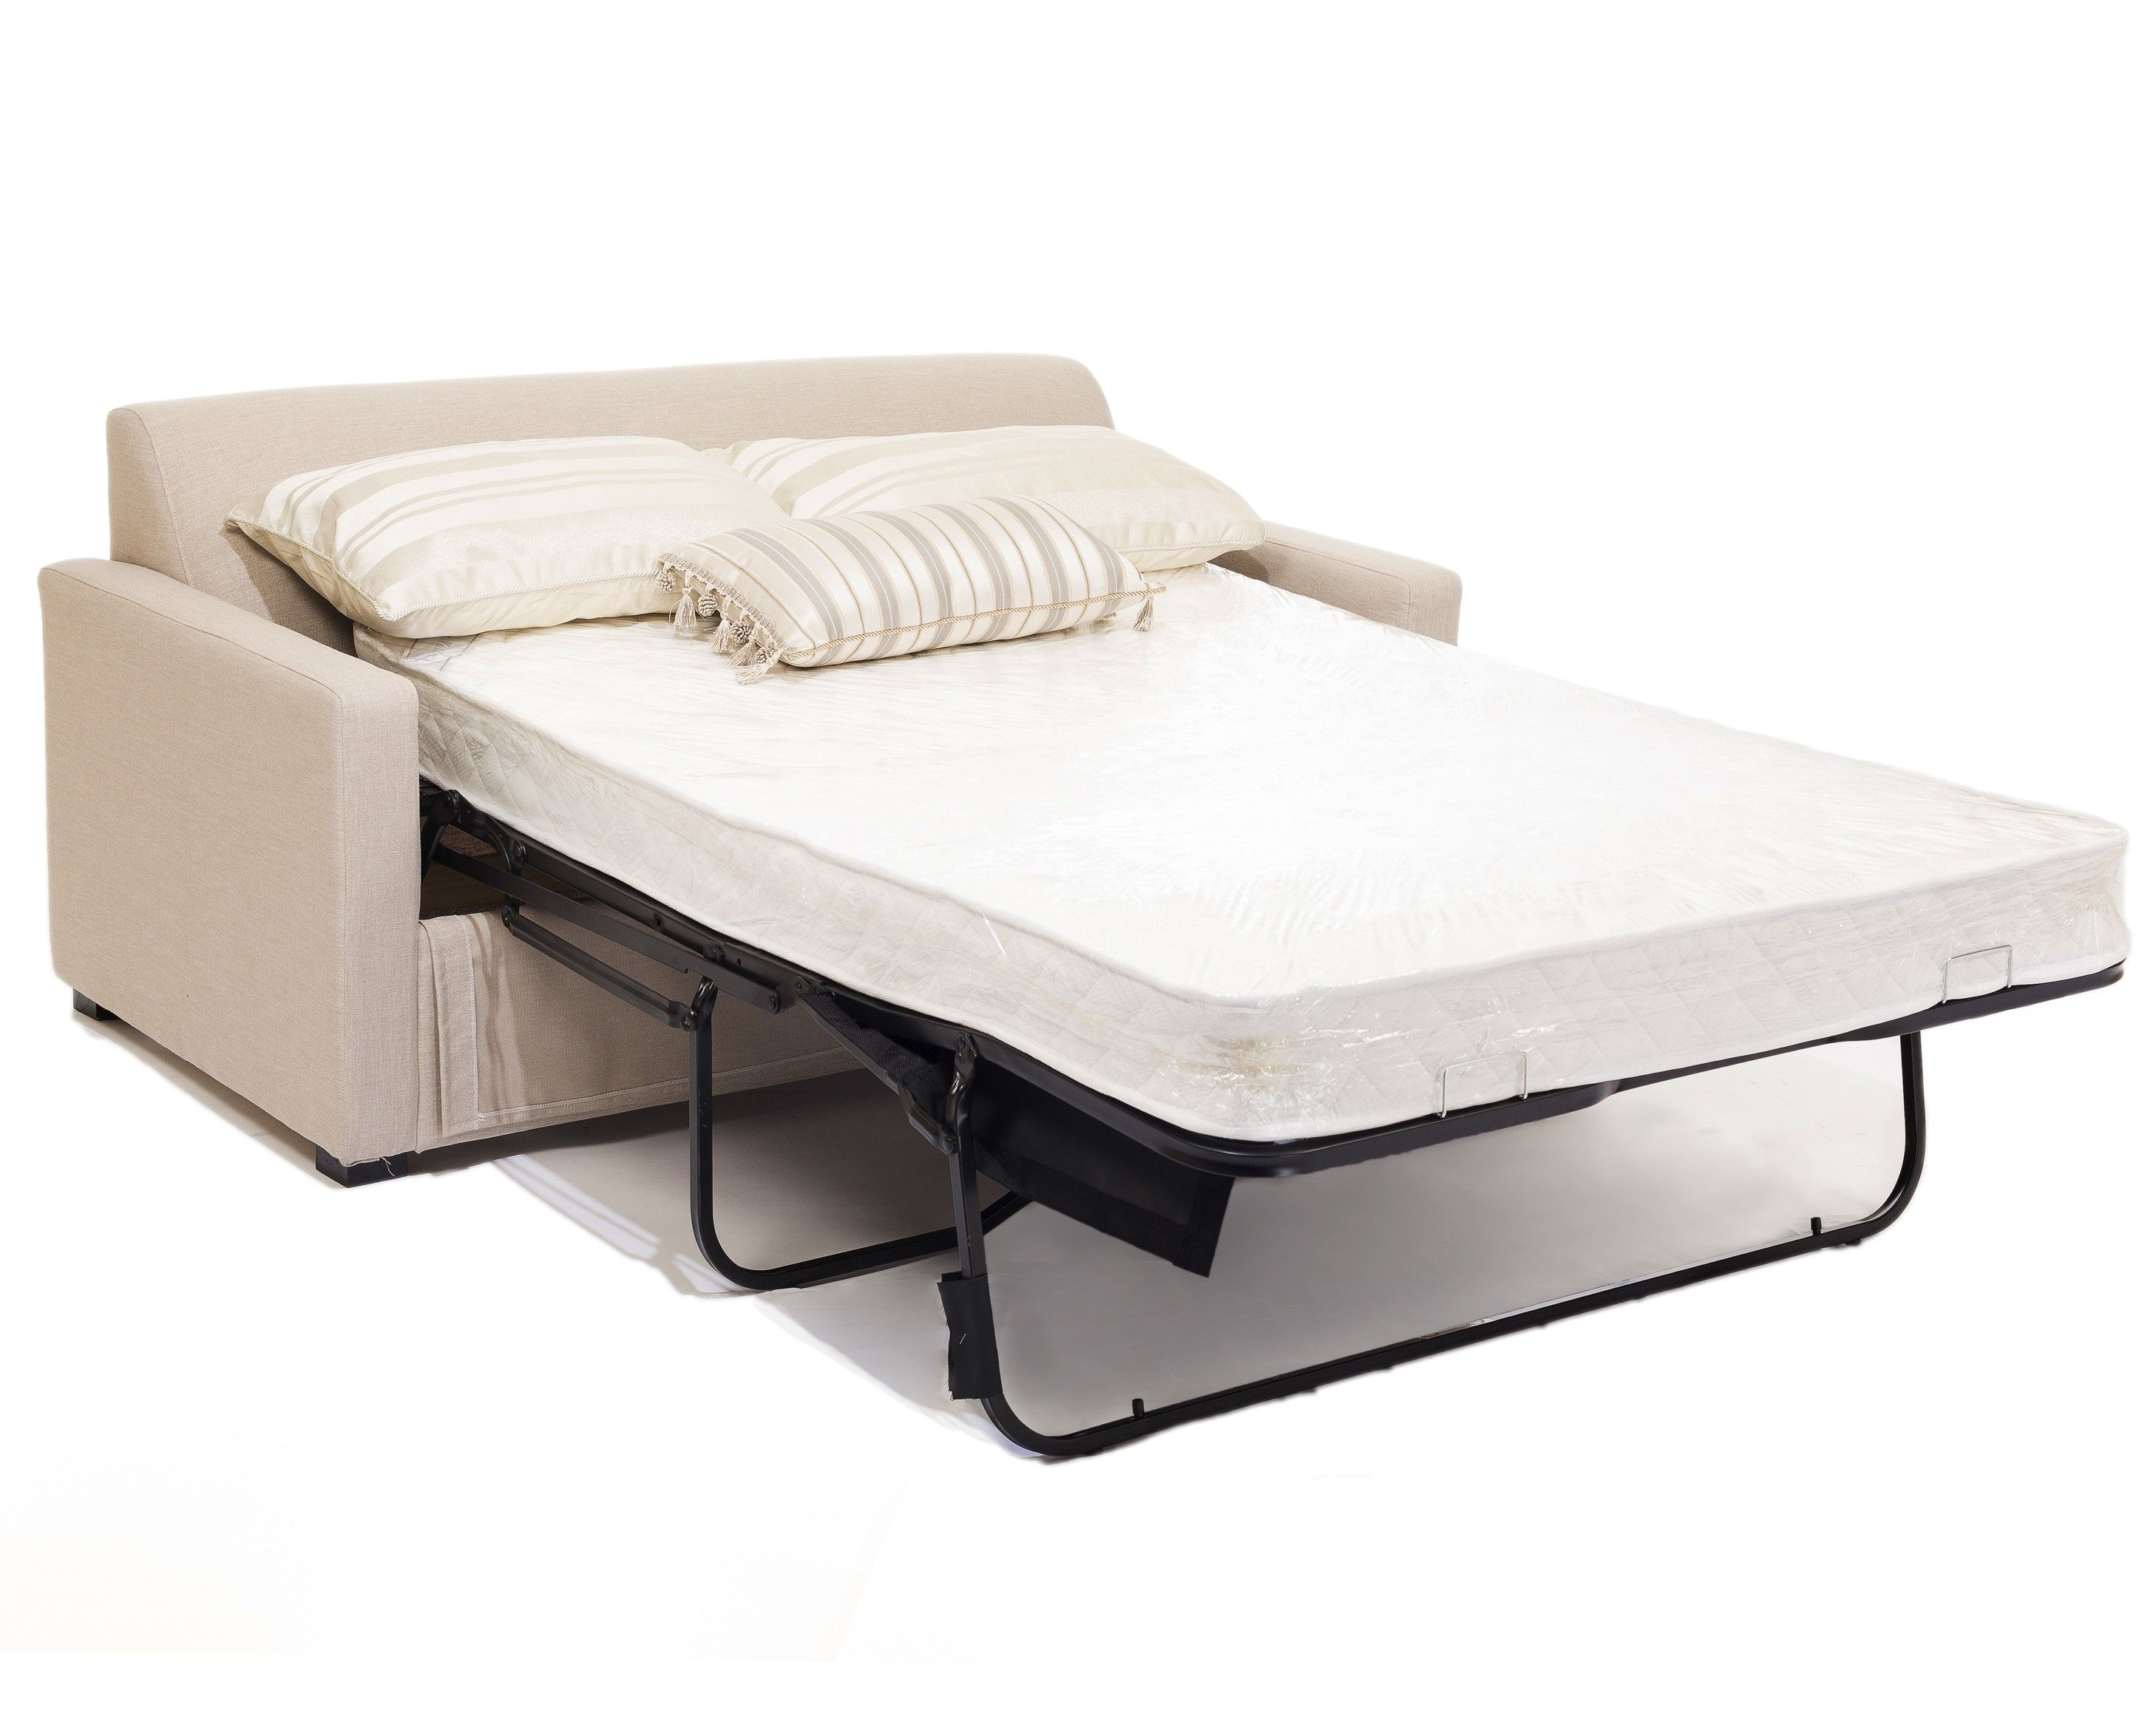 Double Sofa Bed Small Double Sofa Bed Mattress Topper Http Tmidbcom